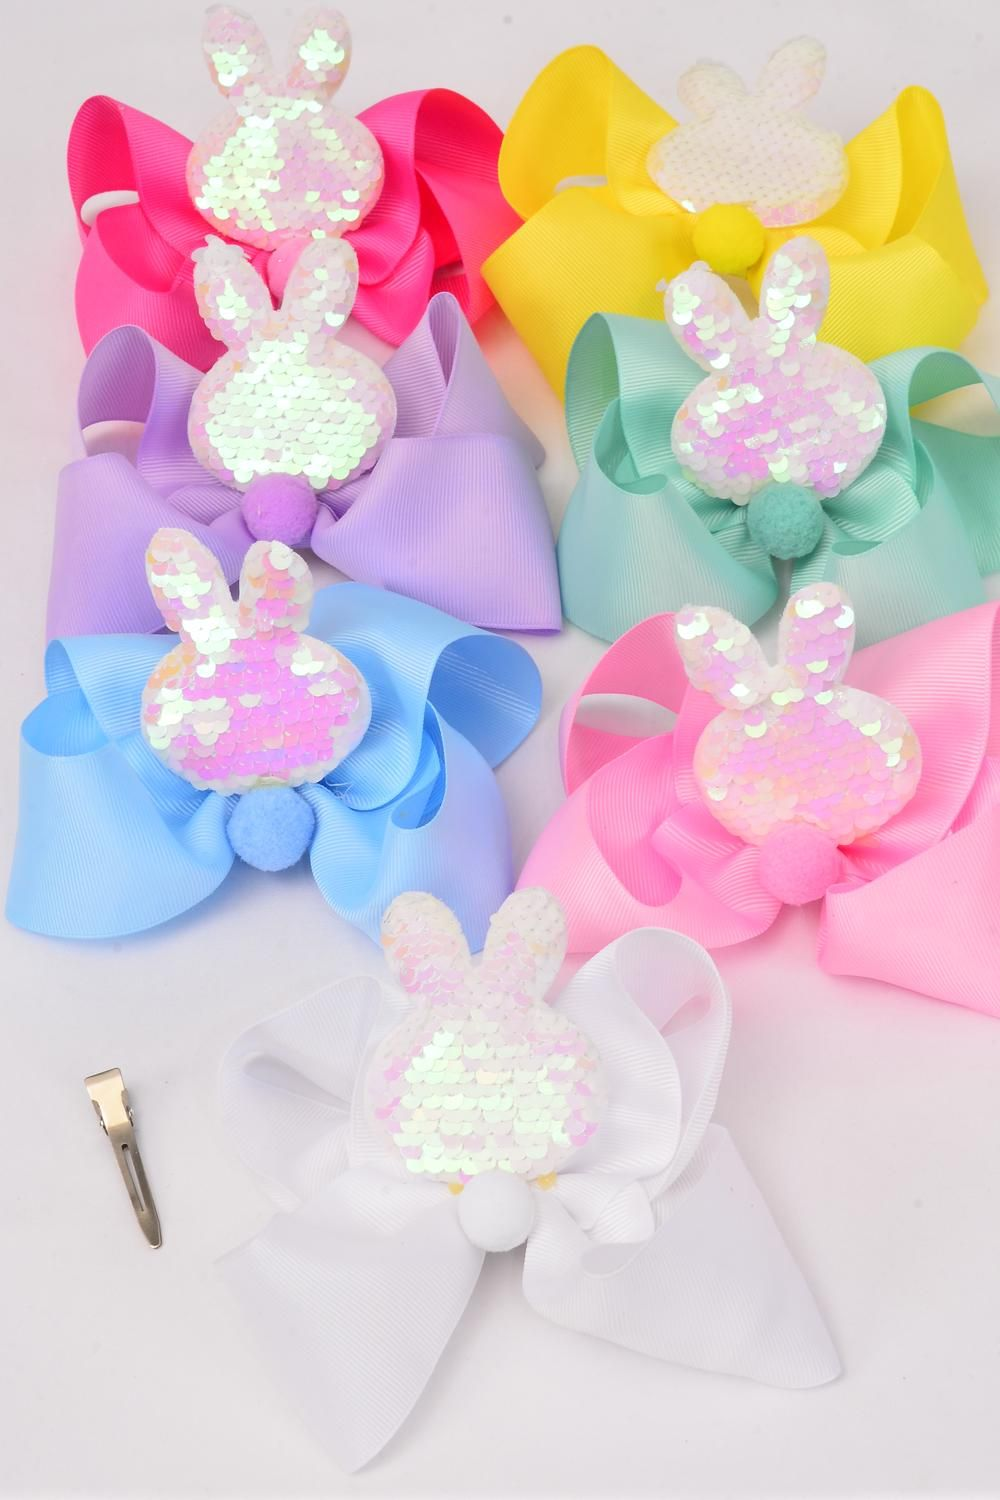 "Hair Bow Jumbo Bunny Ear Mermaid Sequin Fabric 2 Tone Reversible Dragon Shiny Scale Grosgrain Bowtie Pastel/DZ **Pastel** Size-6""x 5"",Alligator Clip,2 White,2 Baby Pink,2 Lavender,2 Blue,2 Yellow,1 Hot Pink,1 Mint Green,7 Color Asst,Clip Strip & UPC Code"